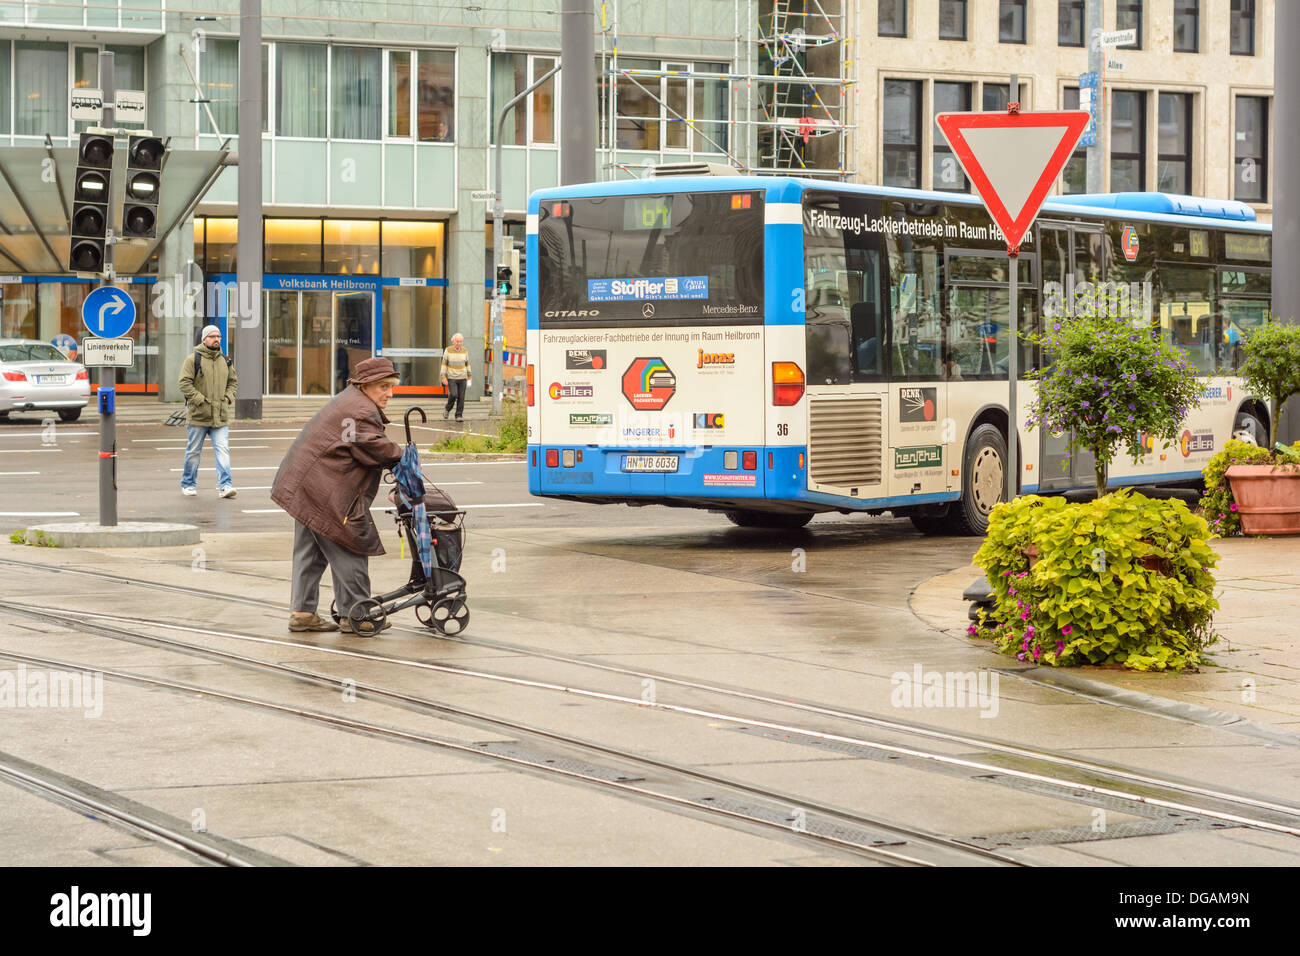 Old woman with wheeled walker and other people cross over a road with tram rails, behind a public bus in the city Heilbronn, Germany - Stock Image